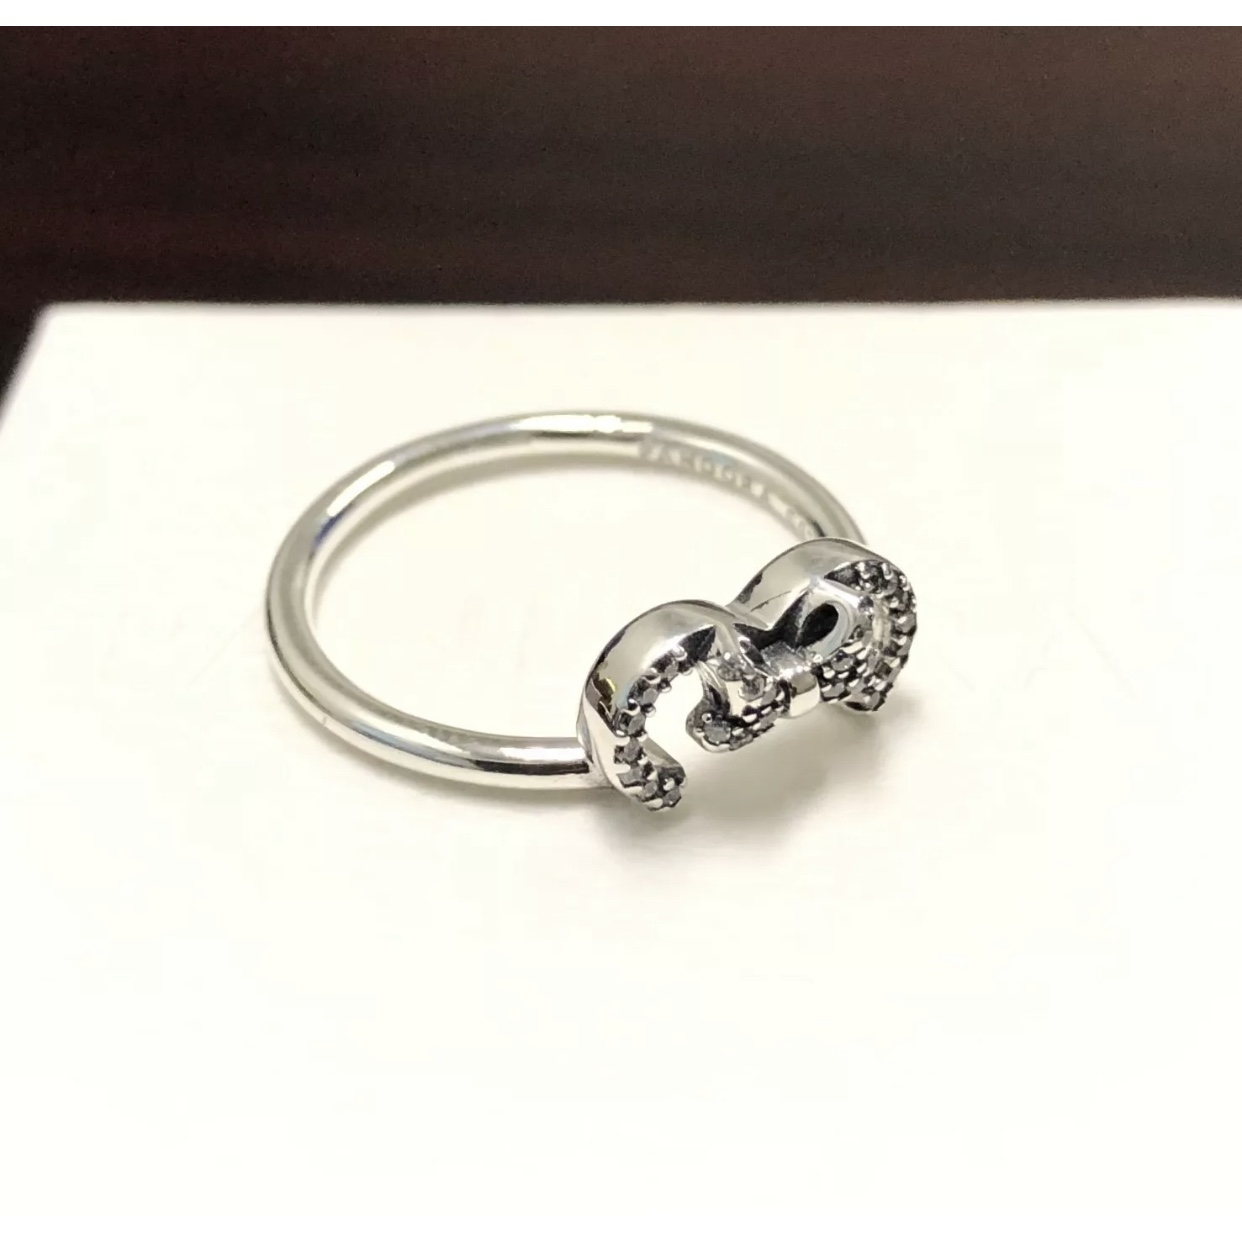 Disney's Pandora Minnie Mouse Silhouette Ring ~ – Depop Throughout Most Recent Disney Minnie Silhouette Rings (View 5 of 25)